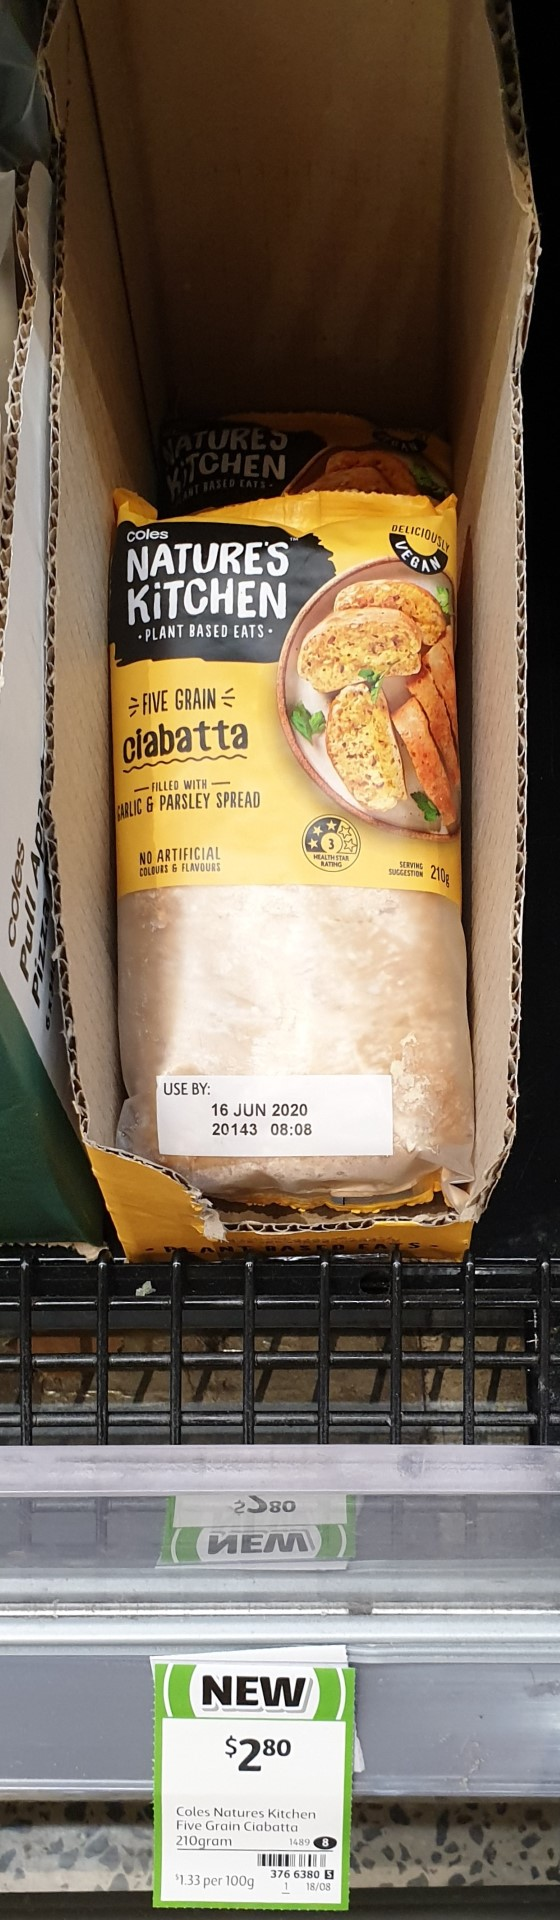 New Products Australia Collection Of New Products On The Shelf At Coles And Woolworths Supermarkets Page 36